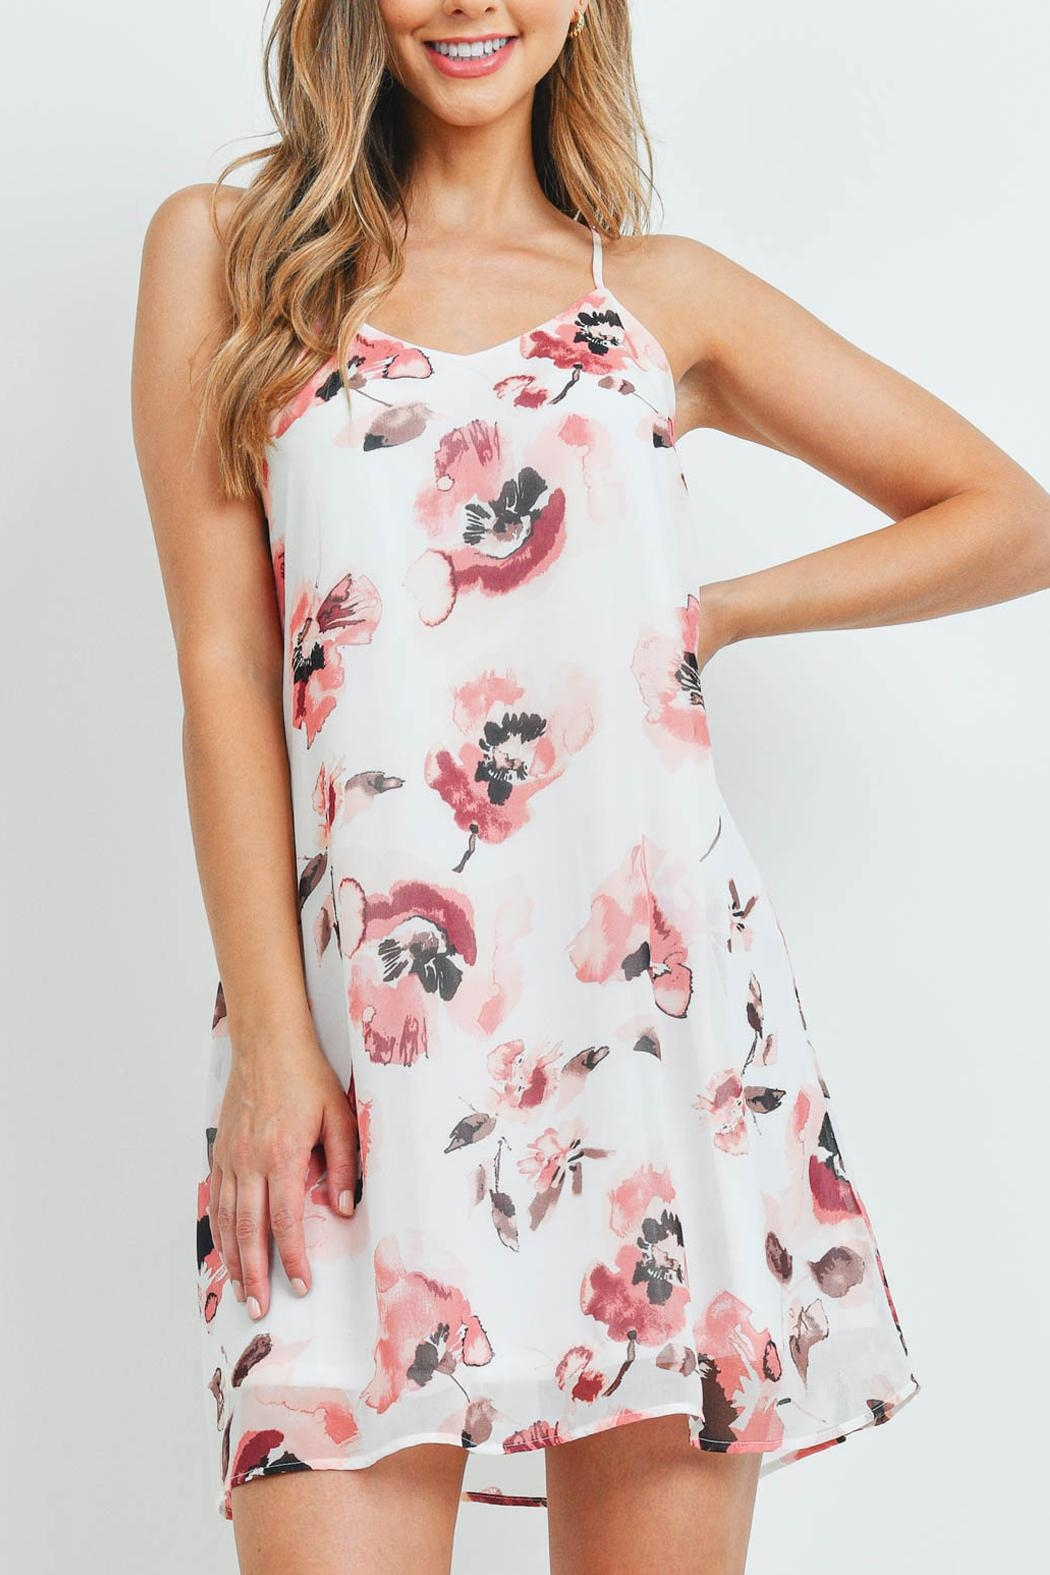 Riah Fashion Spaghetti-Straps-Floral-Print-Dress-With-Inside-Lining - Front Cropped Image